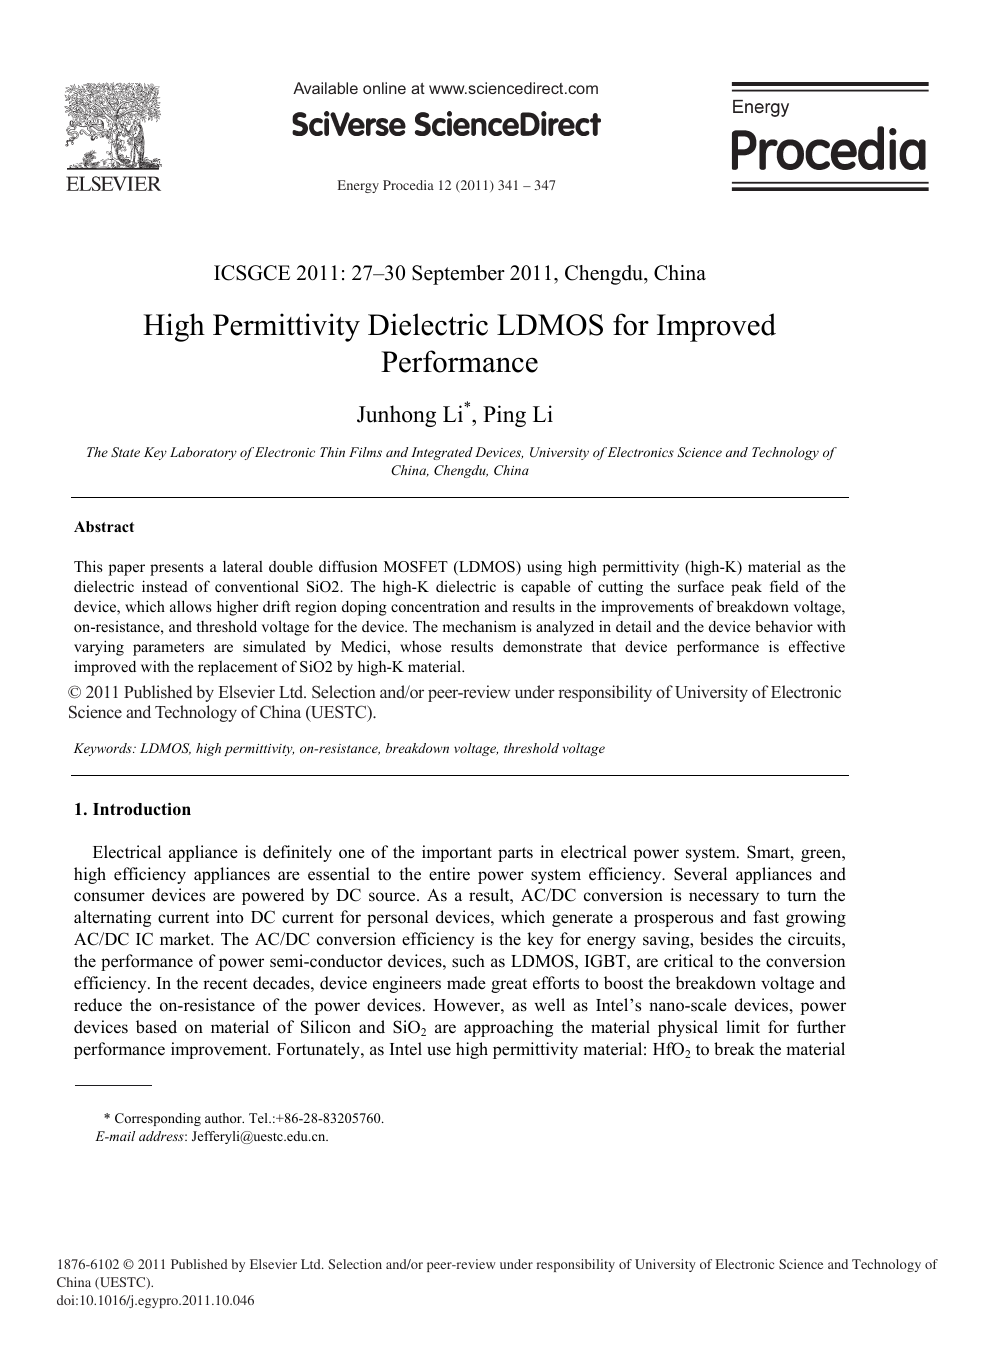 High Permittivity Dielectric LDMOS for Improved Performance – topic